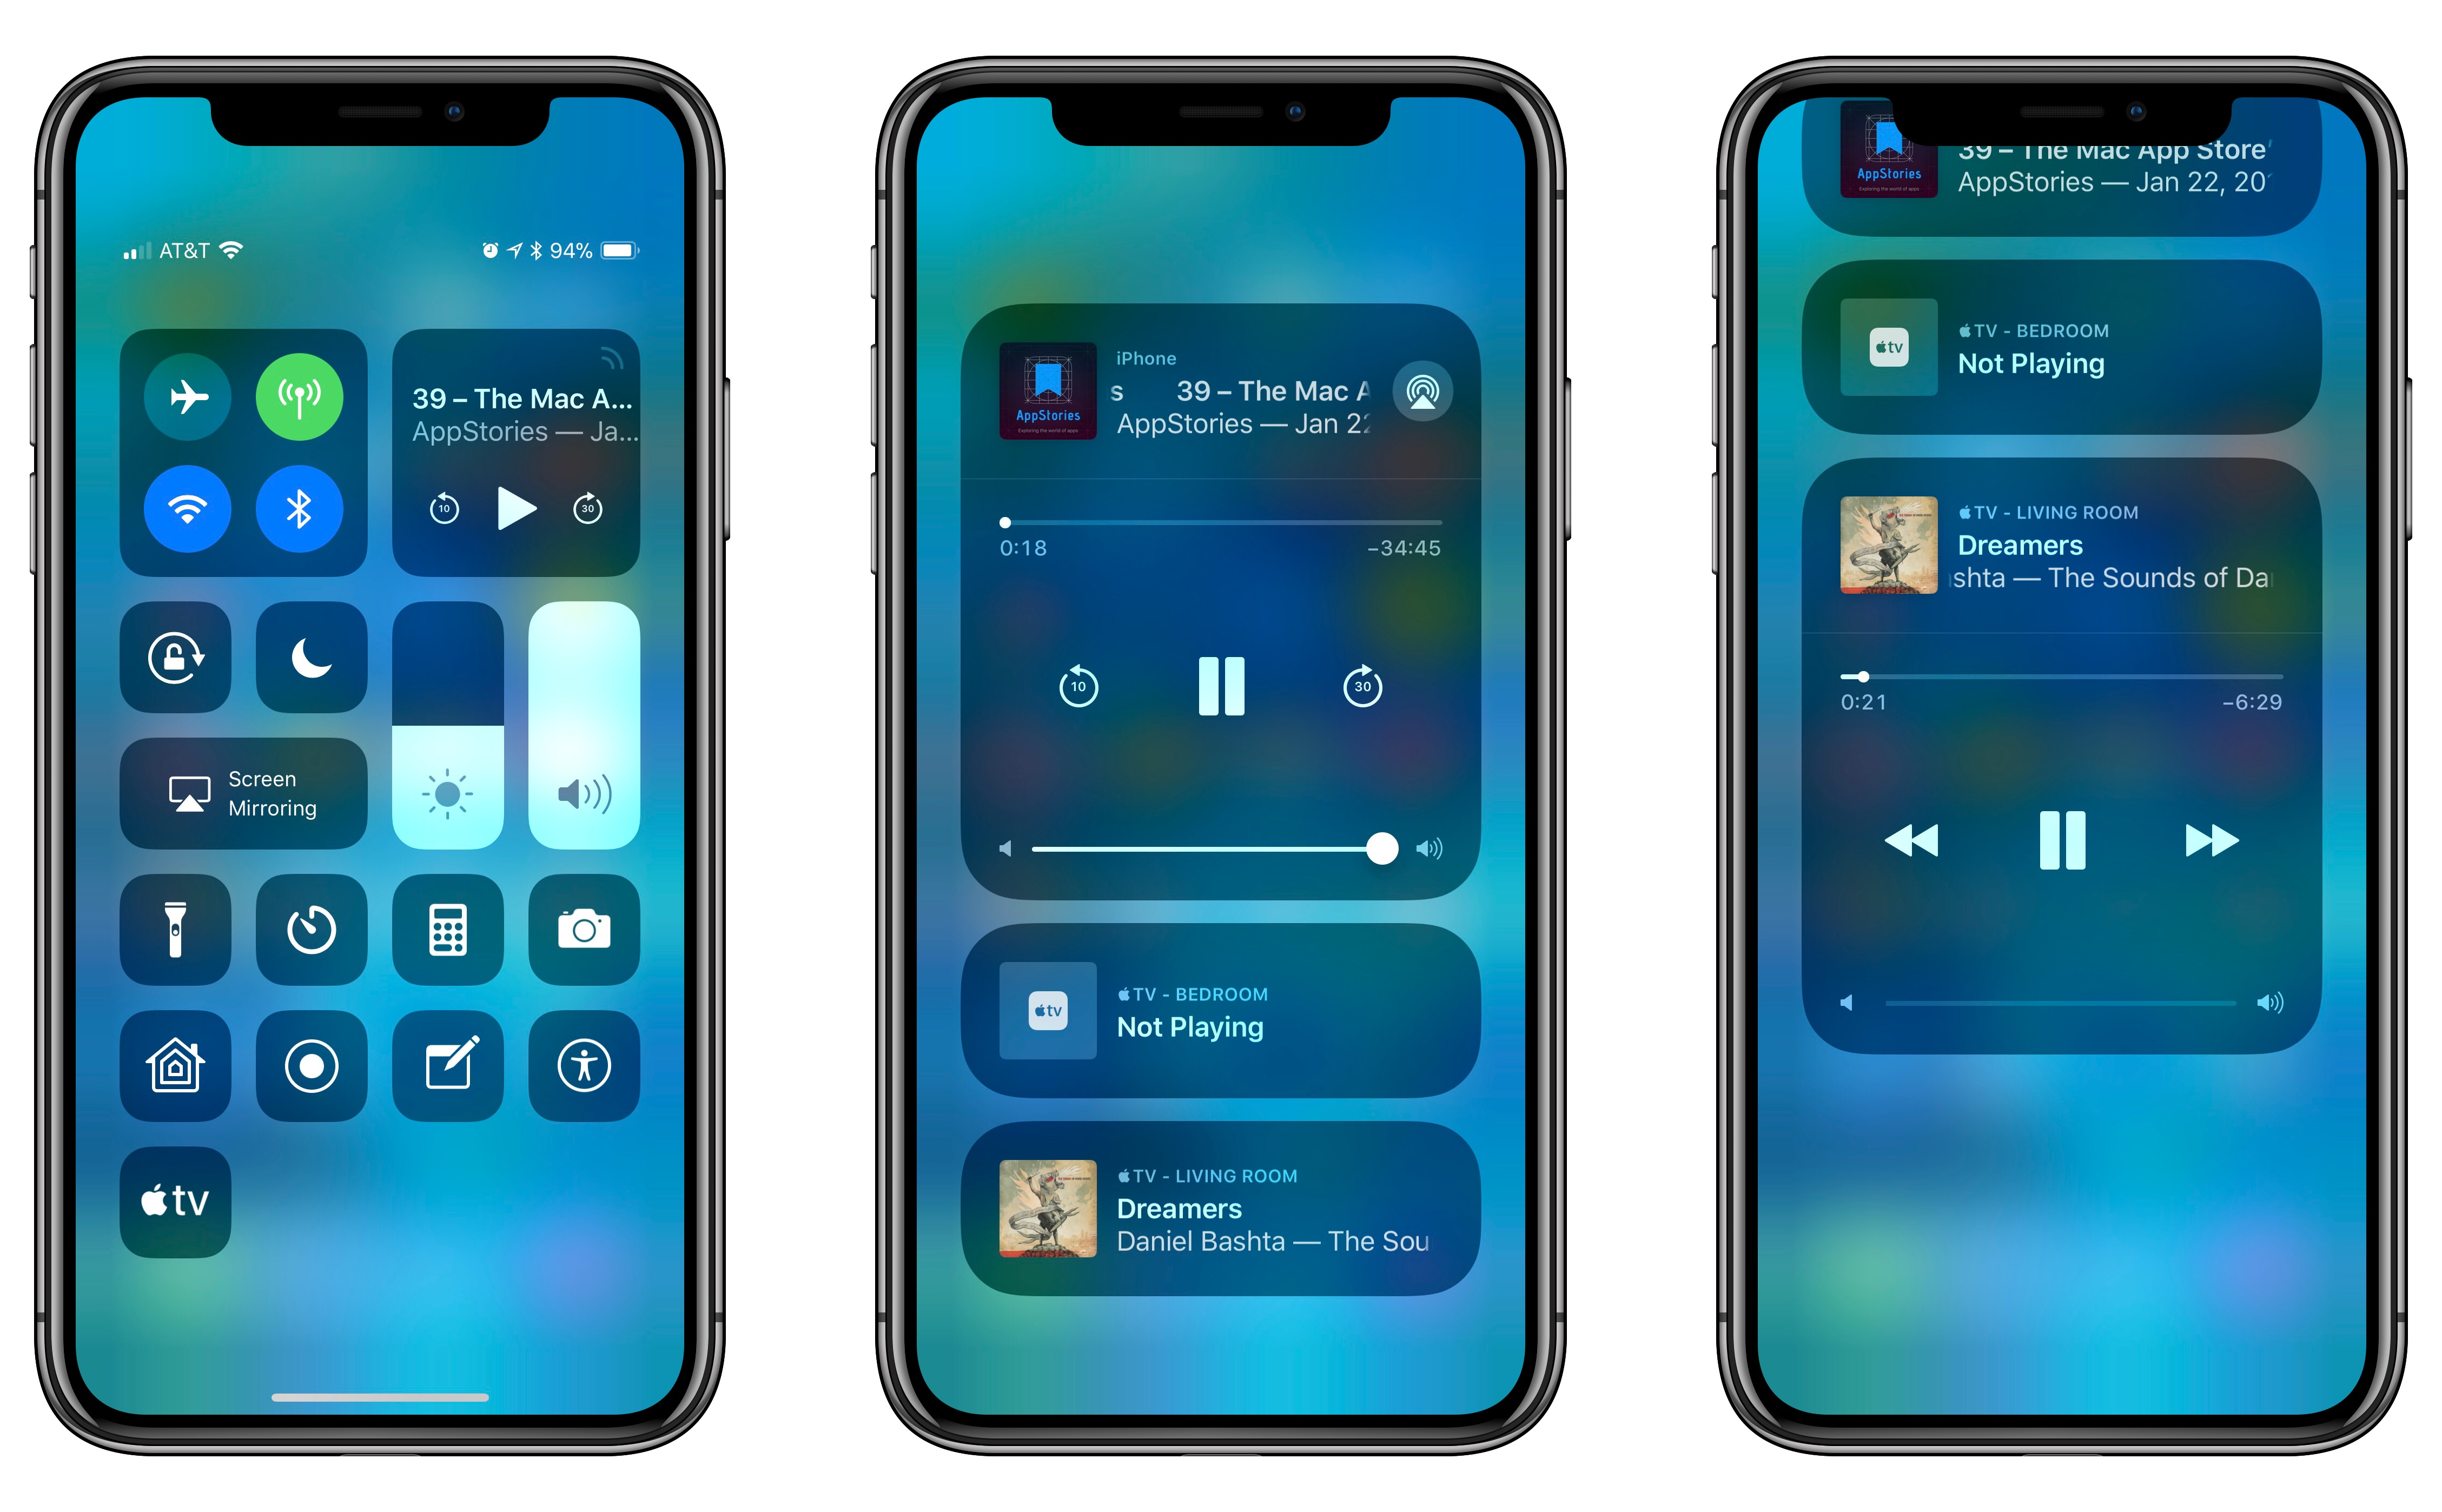 Apple Releases iOS 11.2.5 with HomePod Support, External Audio Source Control, Fix for Messages Bug, and More